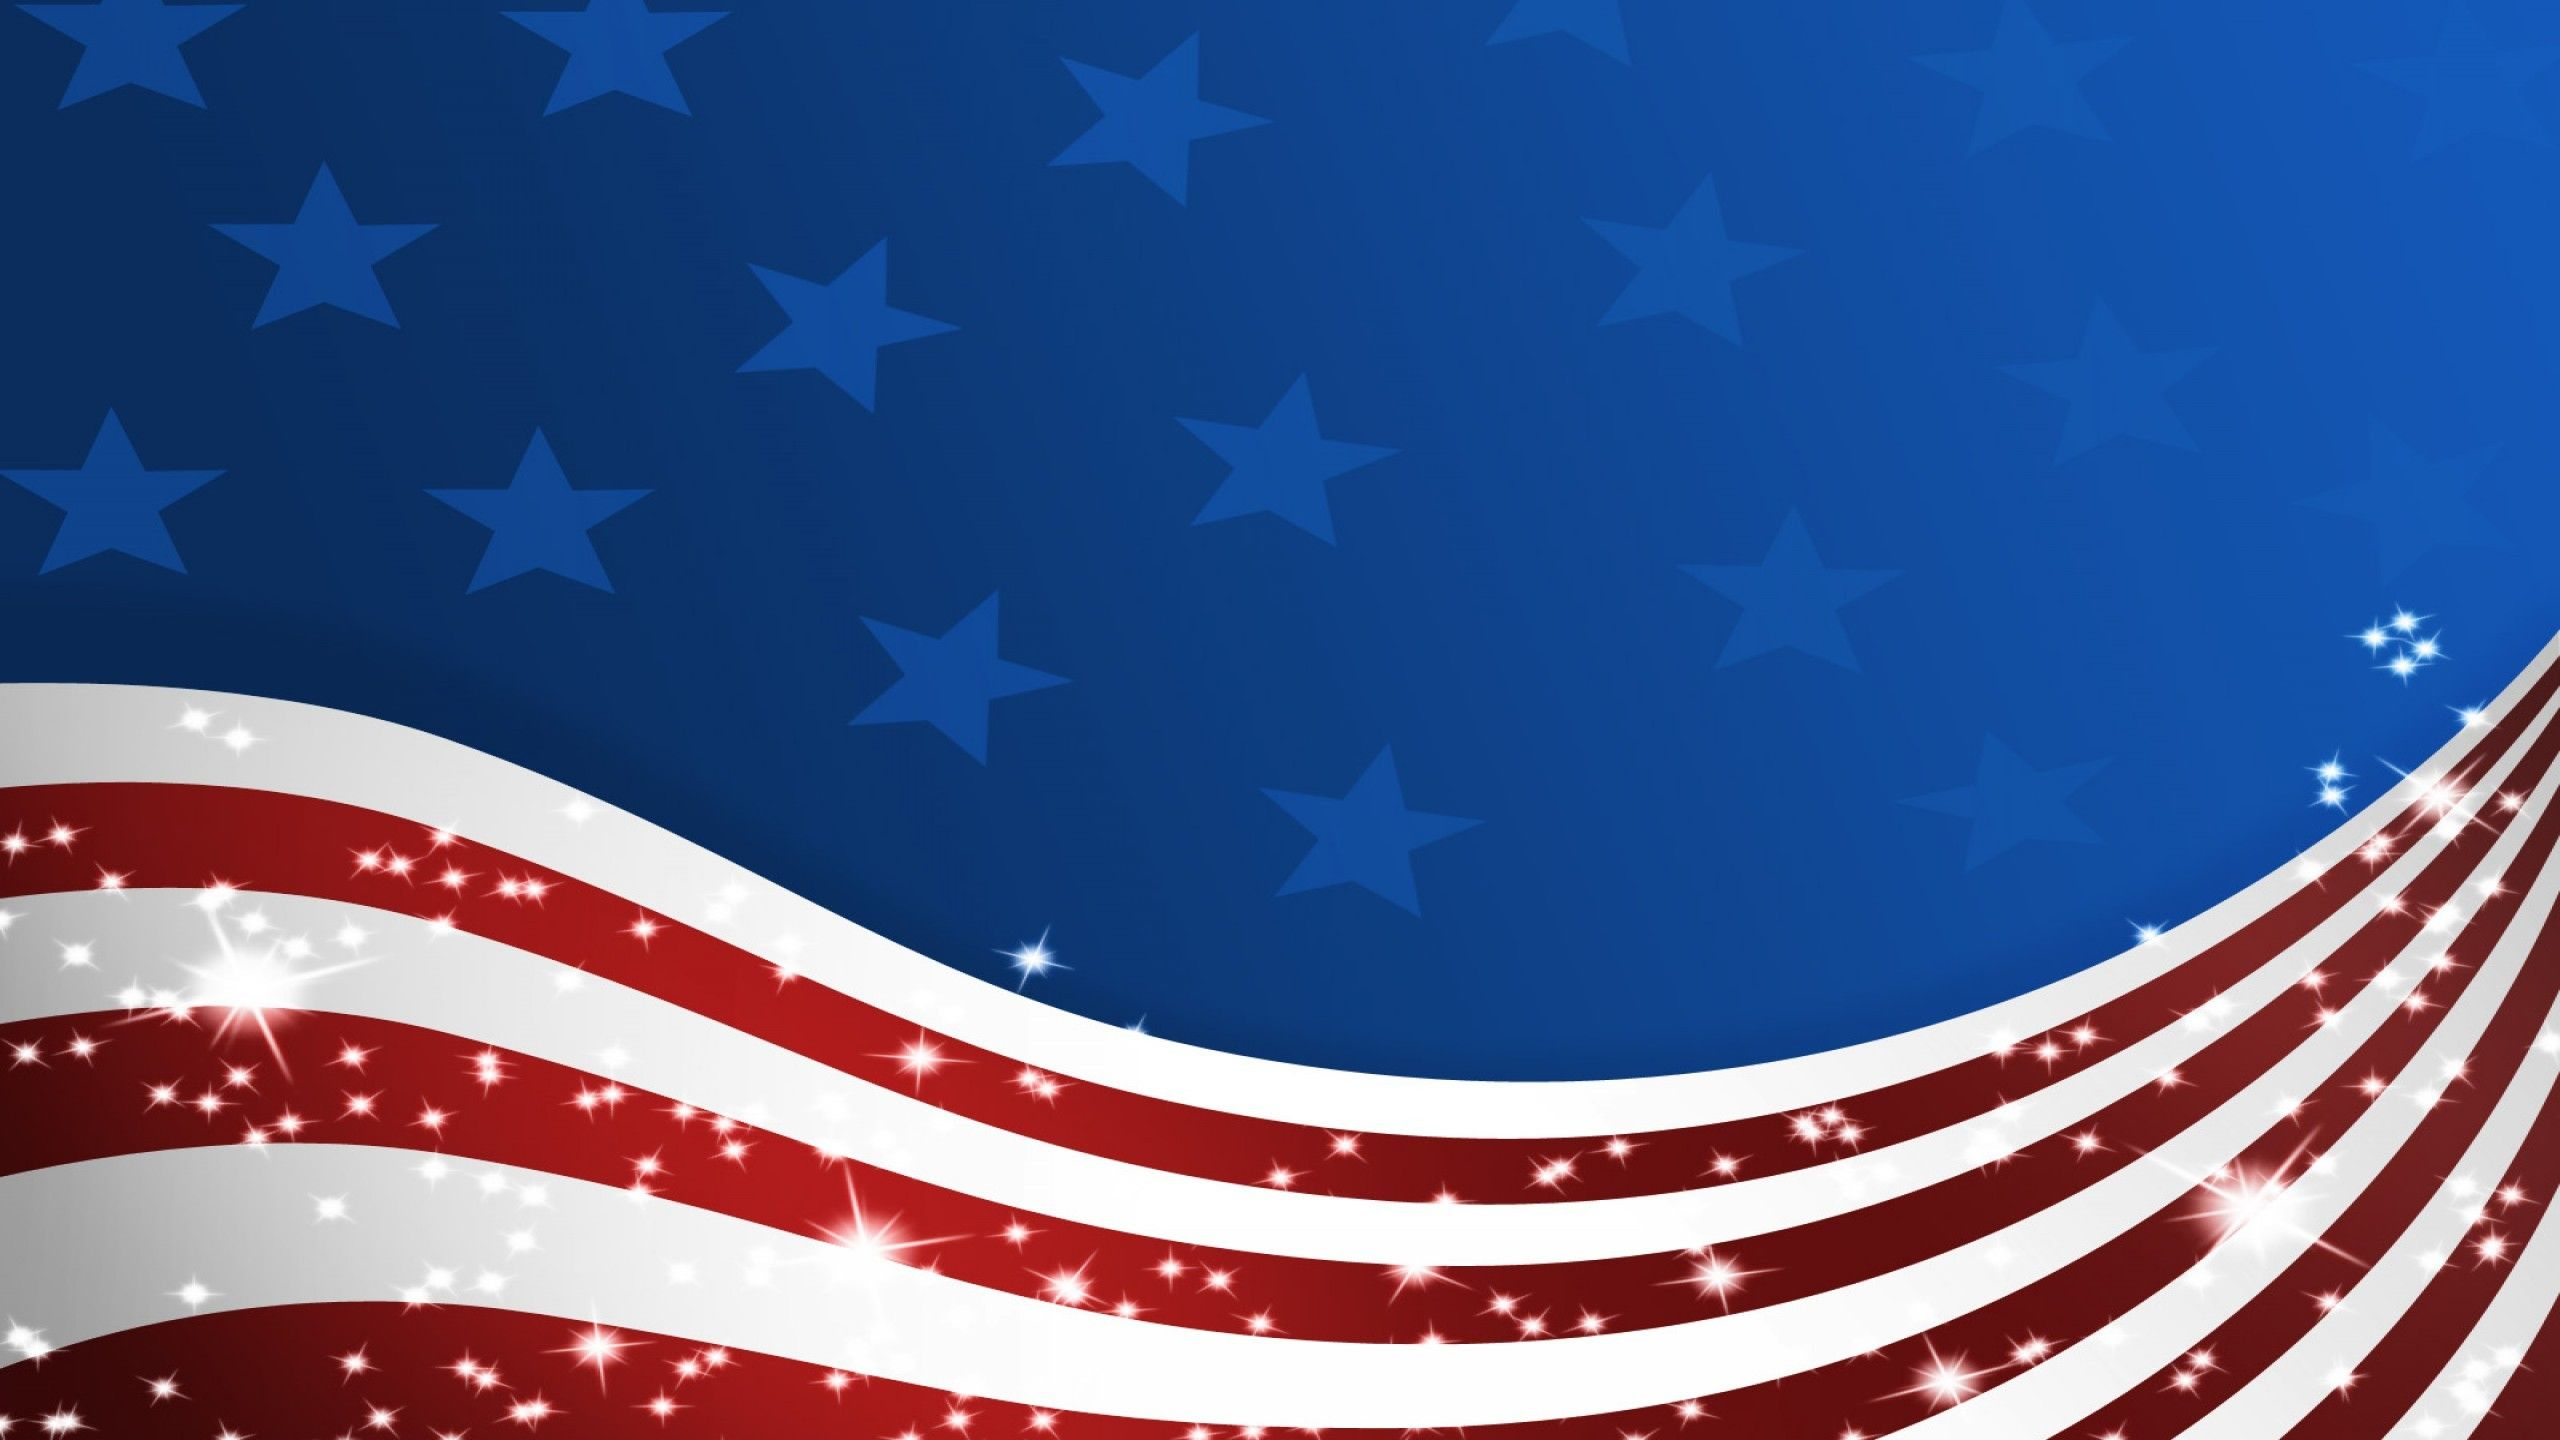 2560x1440 American Background Cliparts American flag background 2560x1440